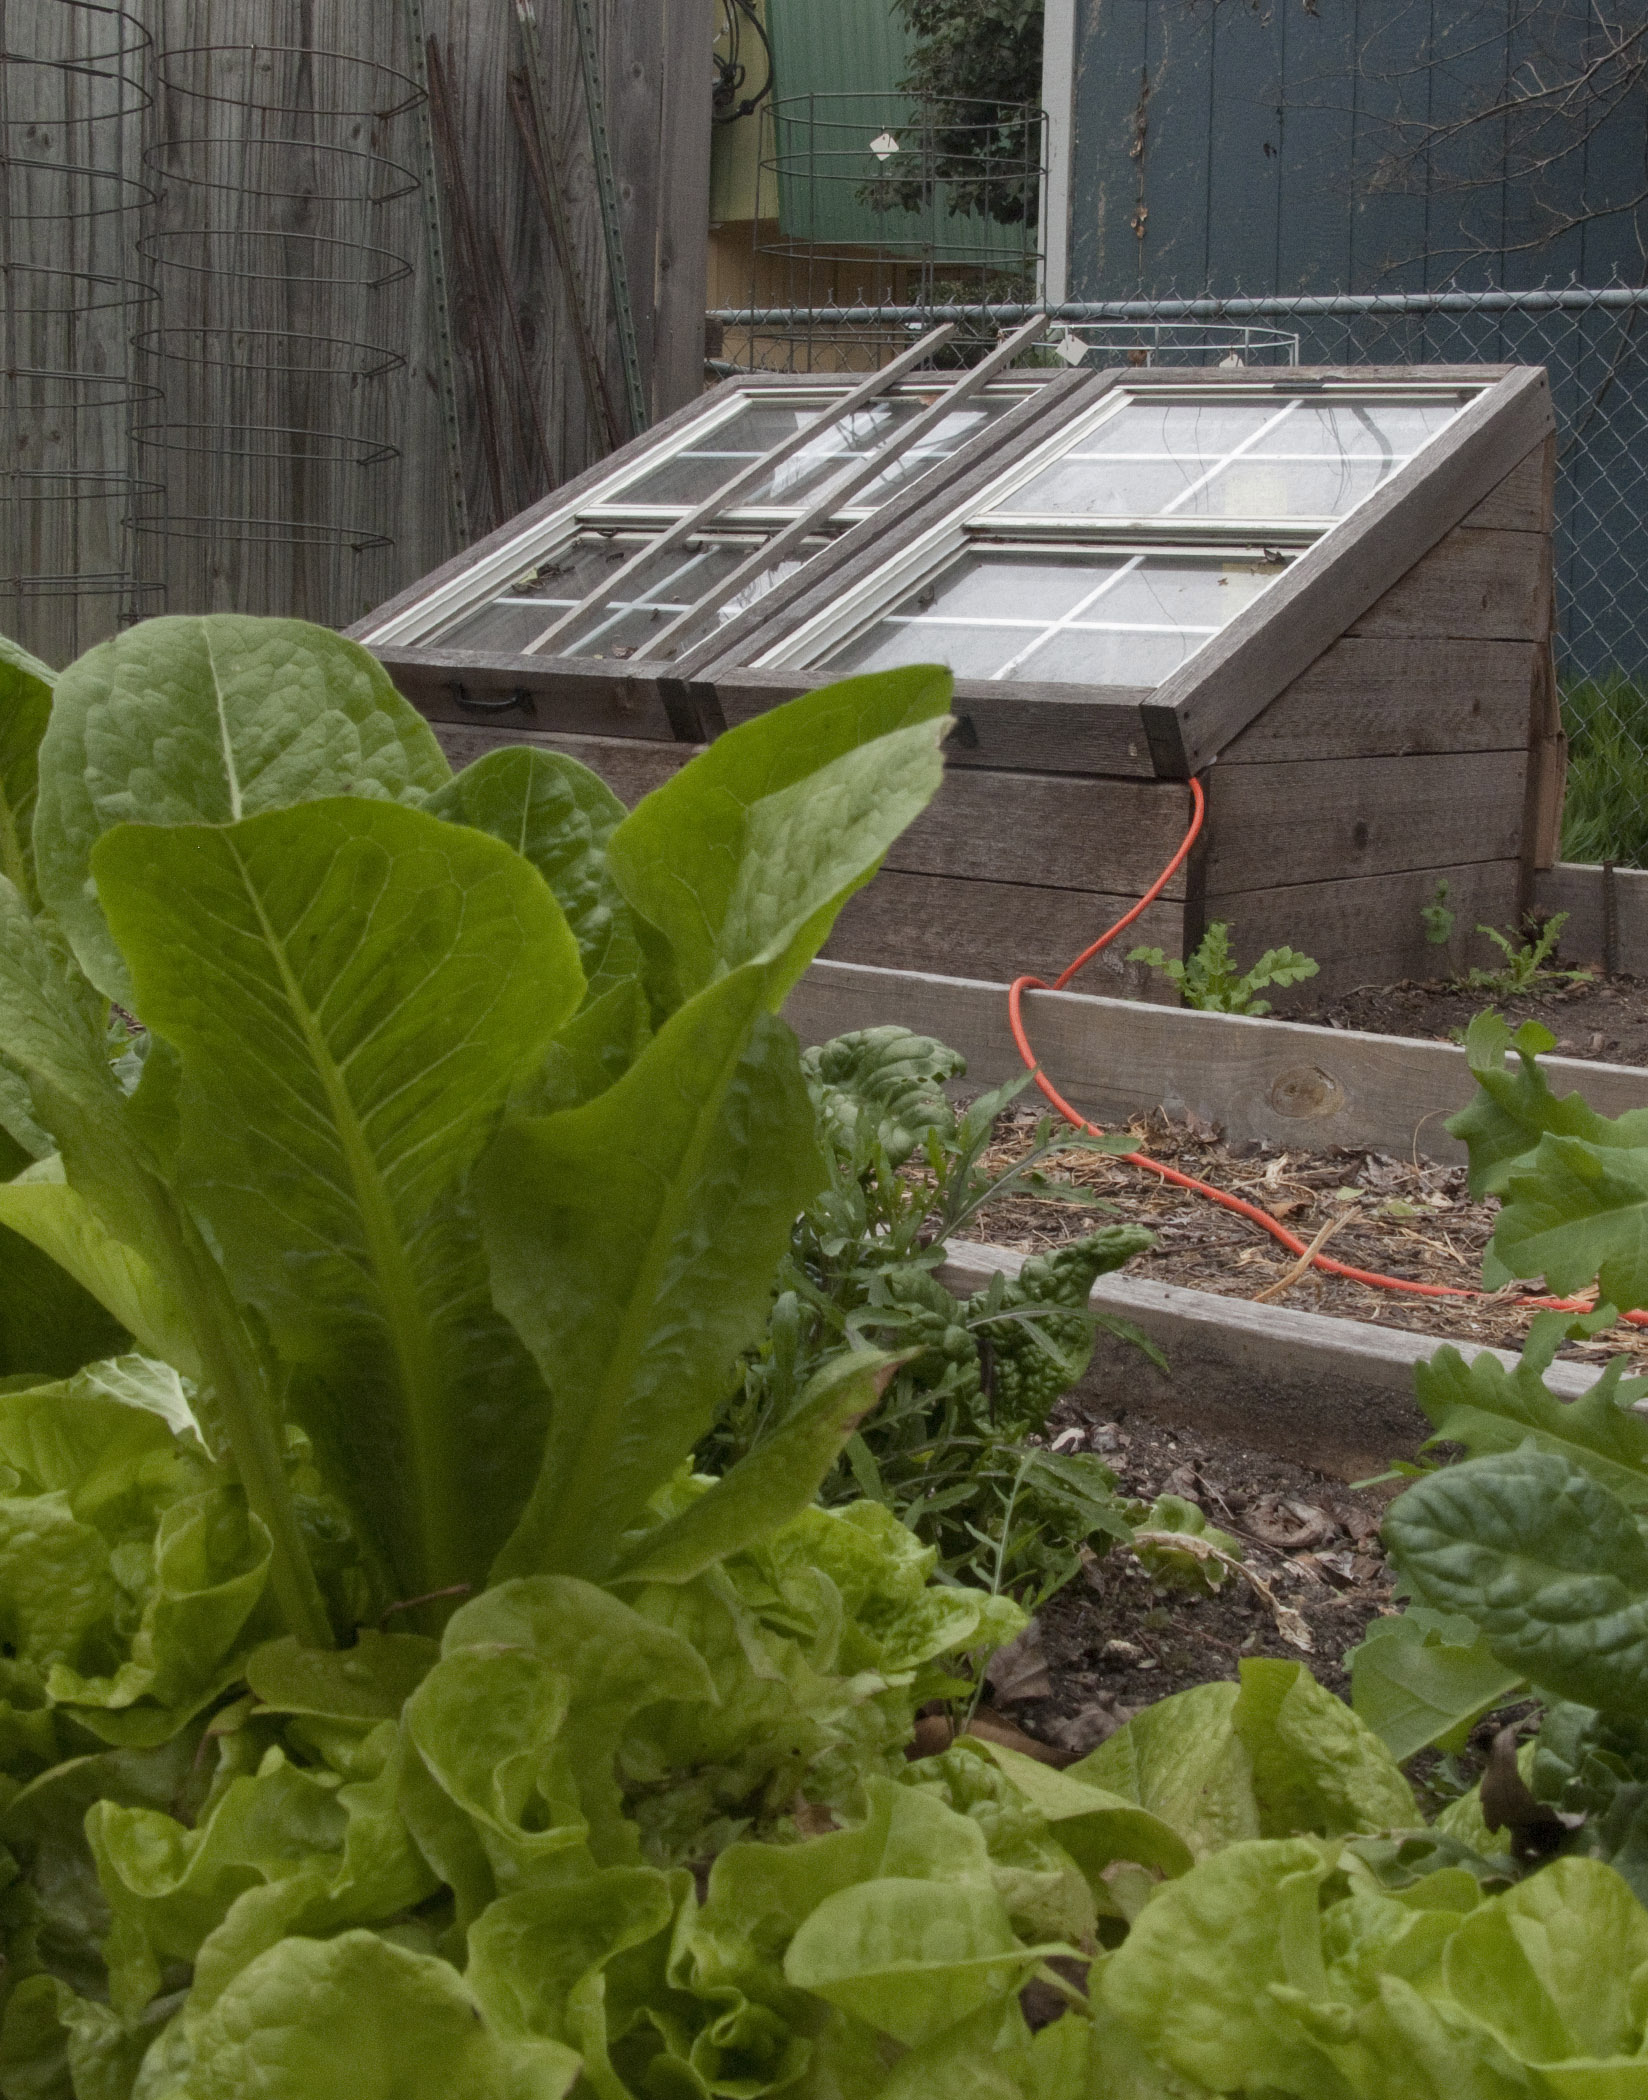 Weeds in flower beds with potato like roots - Cold Frame In Cabluck Back Yard Garden Saturday March 7 2015 In Austin Texas Photo Harry Cabluck